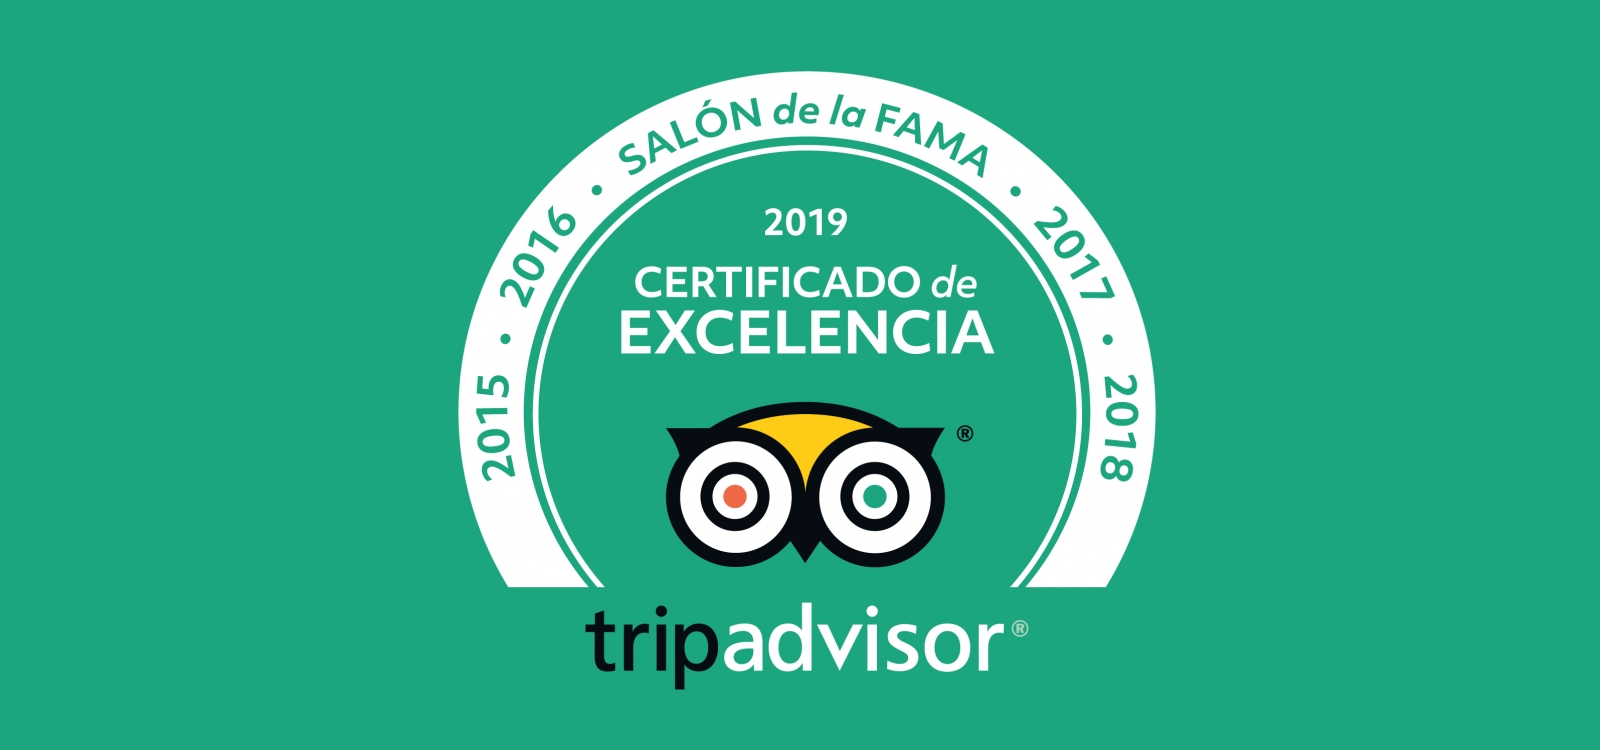 HS HOTSSON Hotel Leon qualifies for the TripAdvisor Hall of Fame